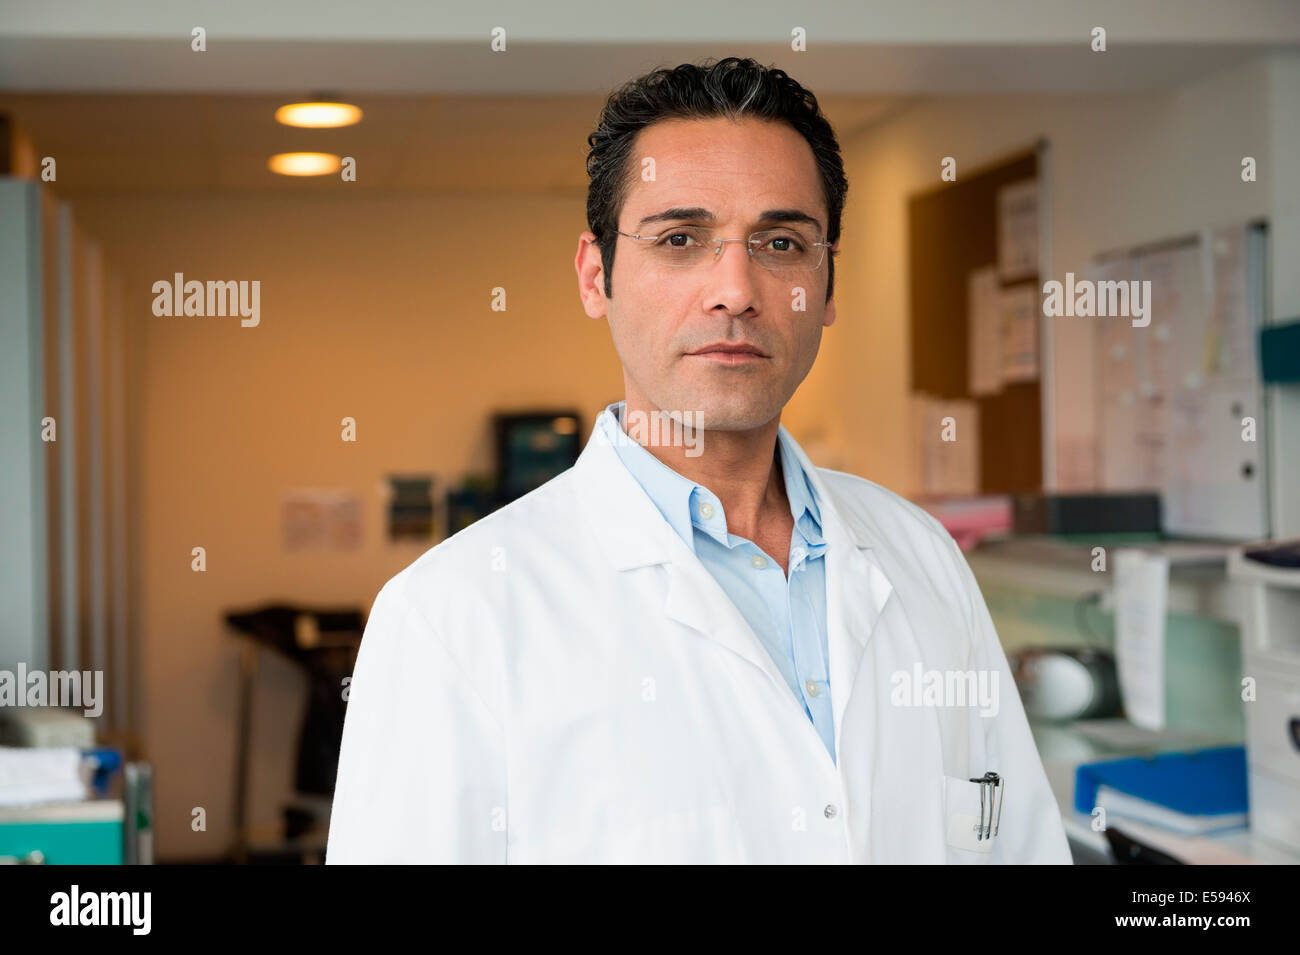 Portrait of a male doctor in hospital - Stock Image